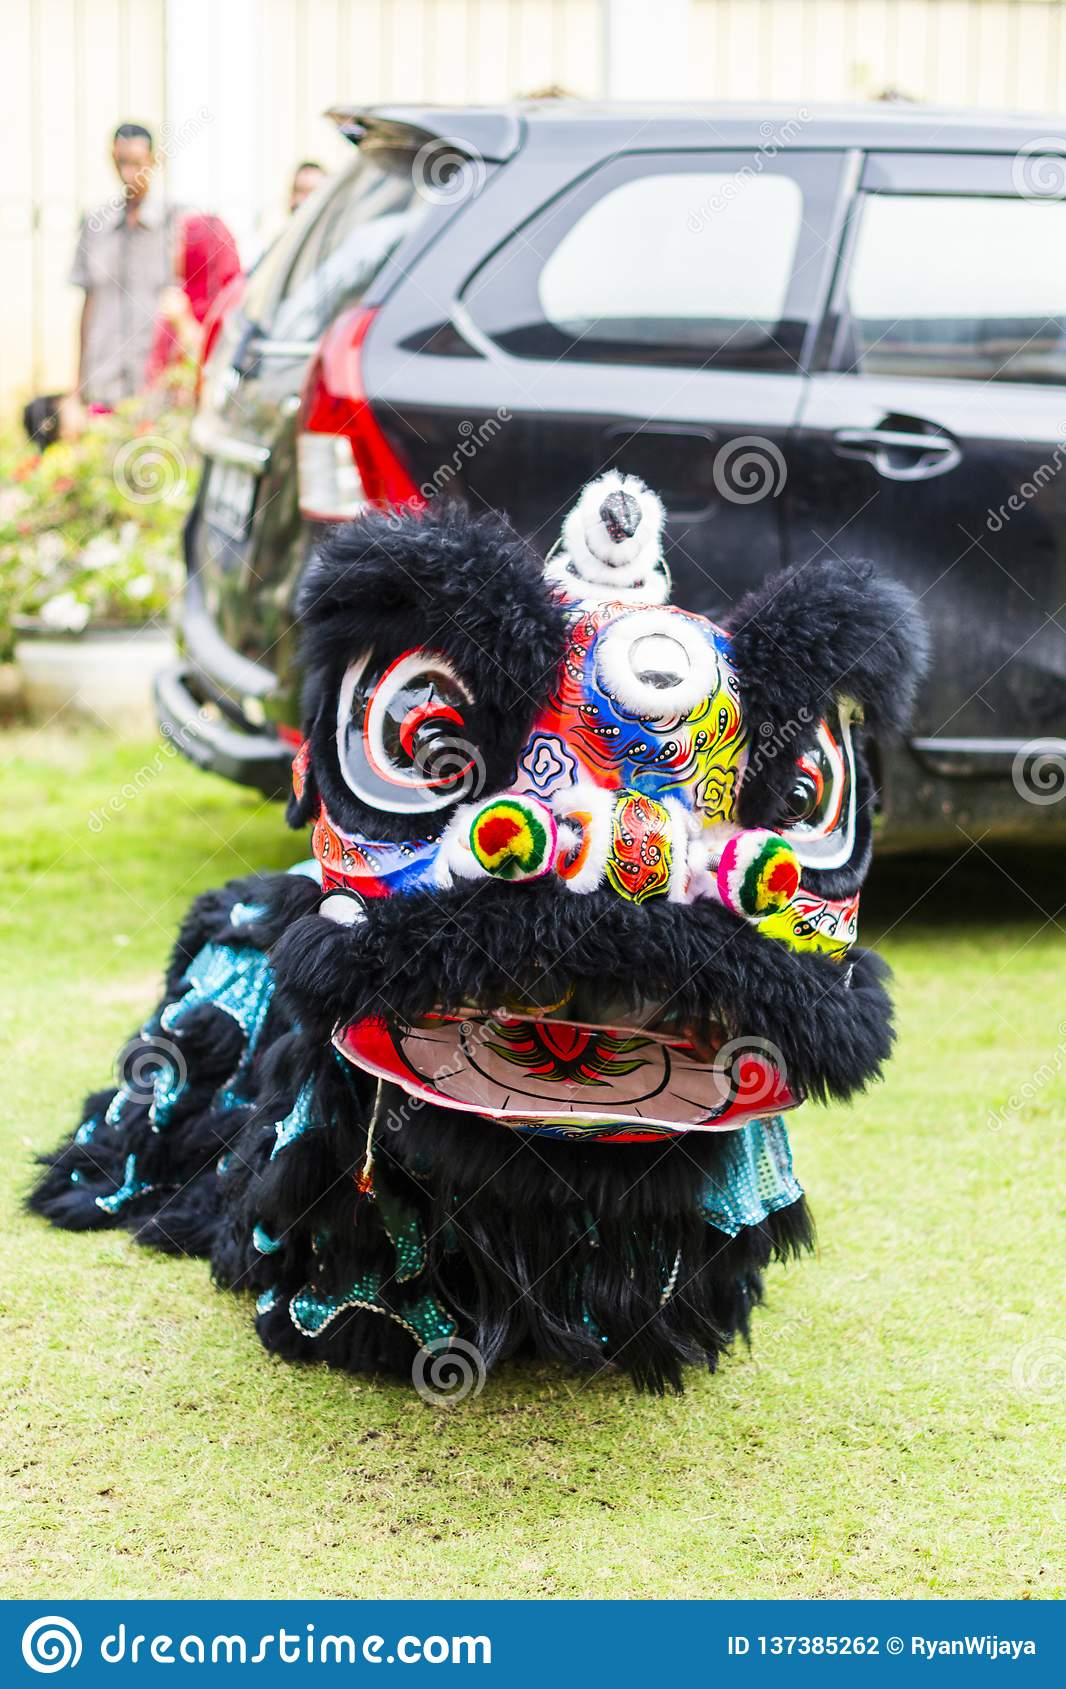 Jambi, Indonesia - January 28, 2017: Lion dance doing acrobatics to celebrate Chinese New Year